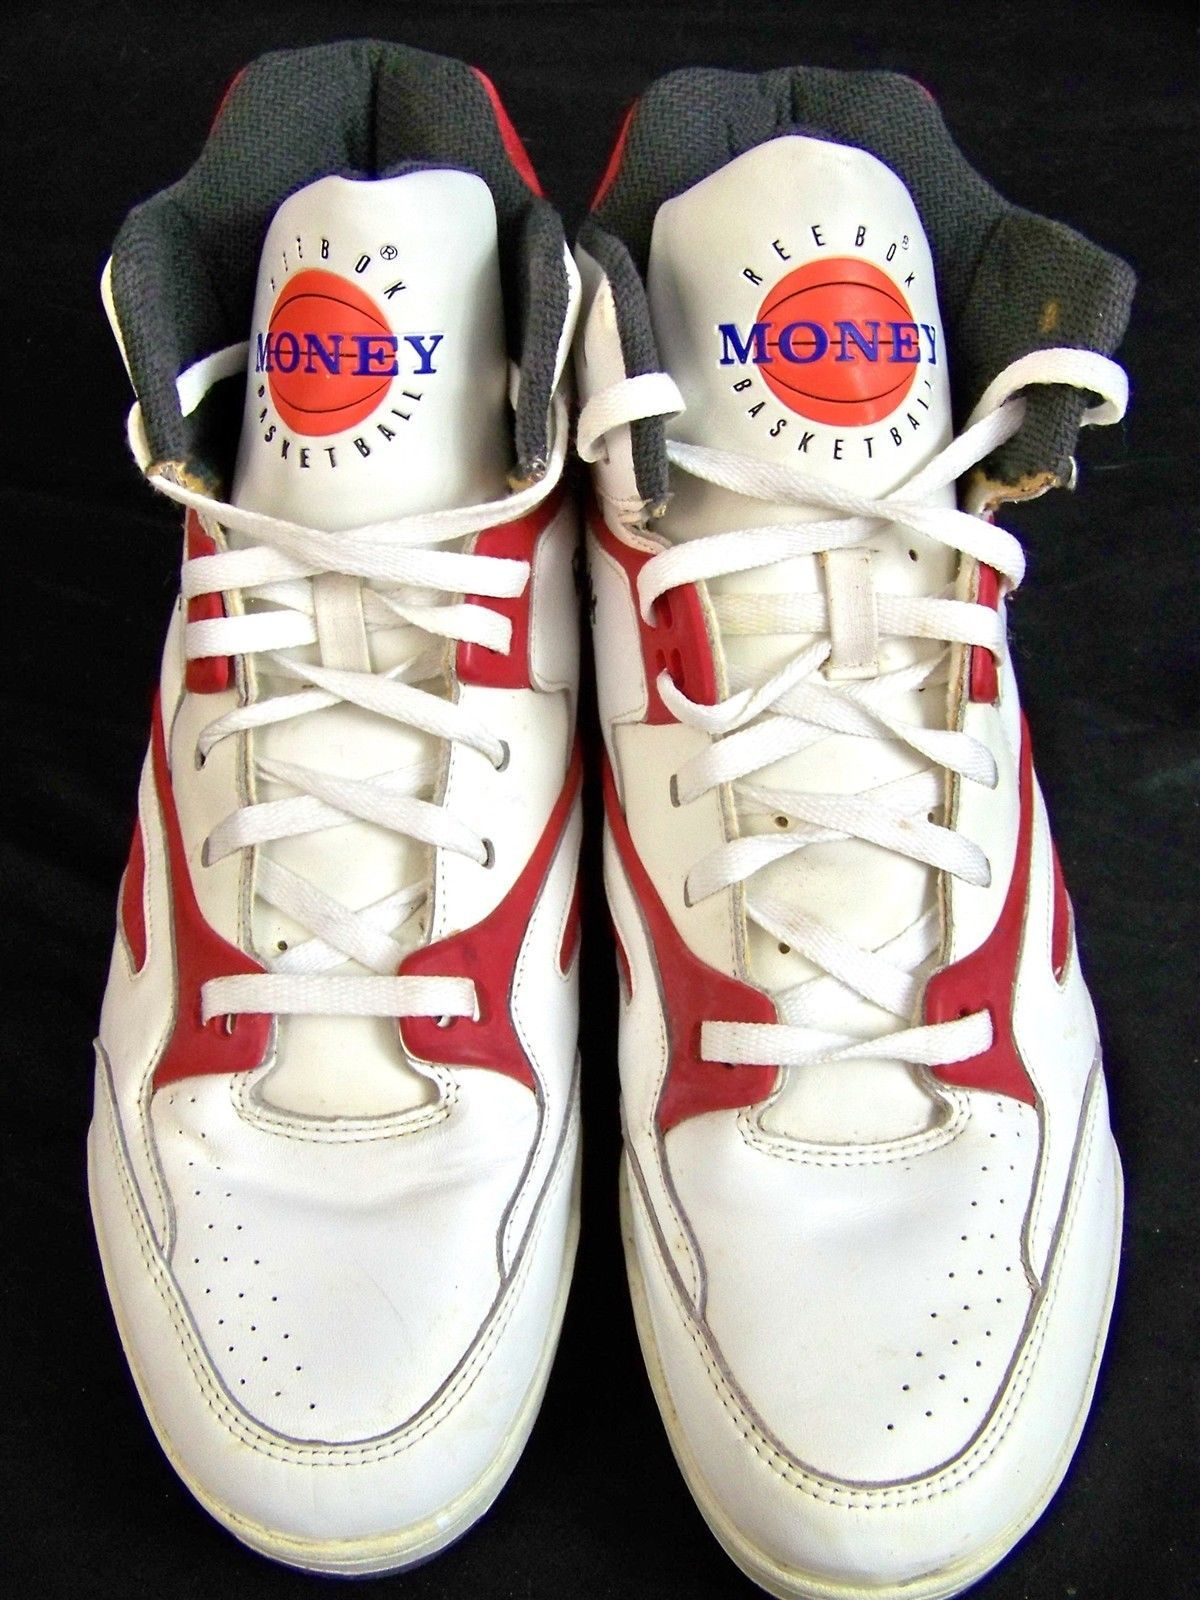 official photos ee1c5 f8026 Vintage Deadstock Reebok ers Money High Top Basketball Shoes Wearable Size  12  eBay